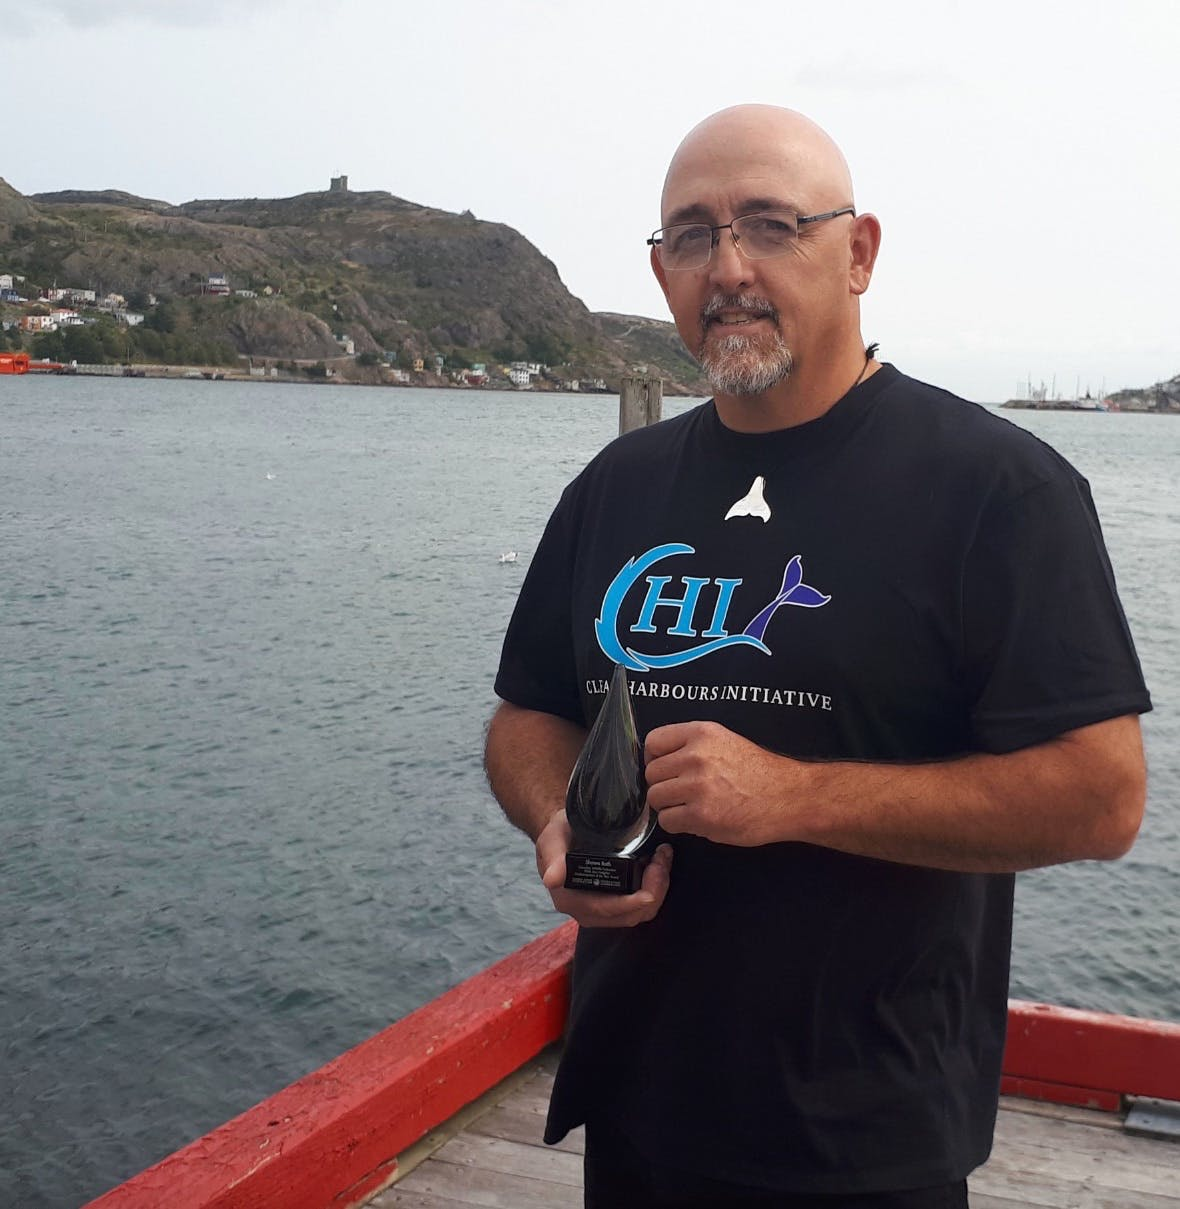 Twillingate native Shawn Bath was recently given the Stan Hodgkiss Outdoorsperson of the Year Award by the Canadian Wildlife Federation. Contributed photo